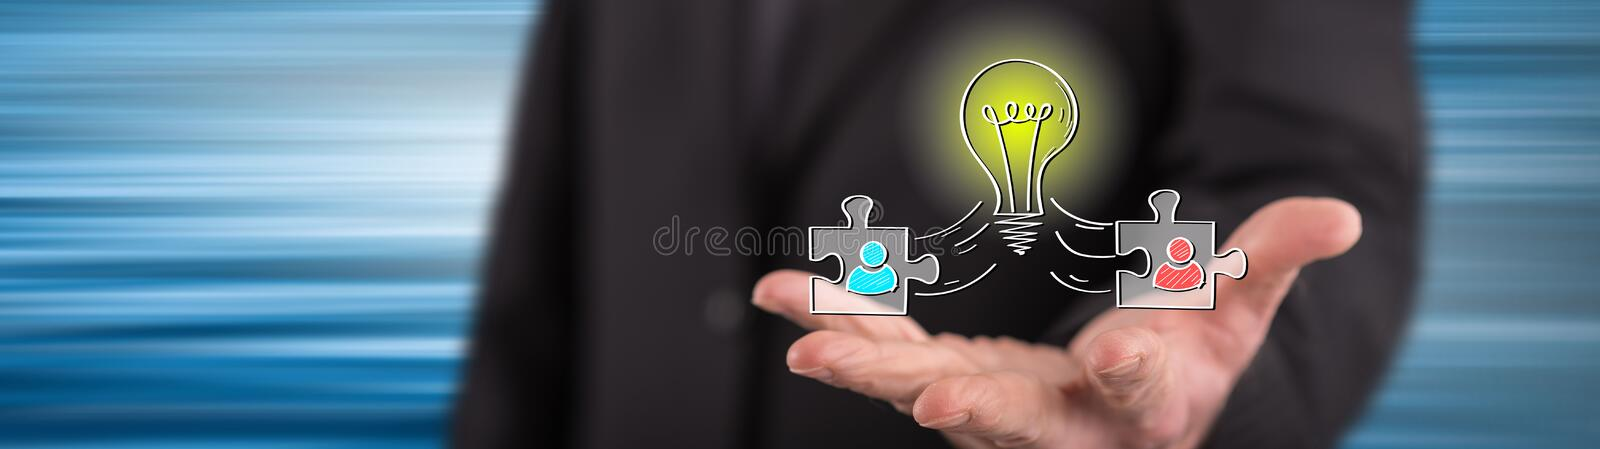 Concept of teamwork idea. Teamwork idea concept above the hand of a man in background stock photo